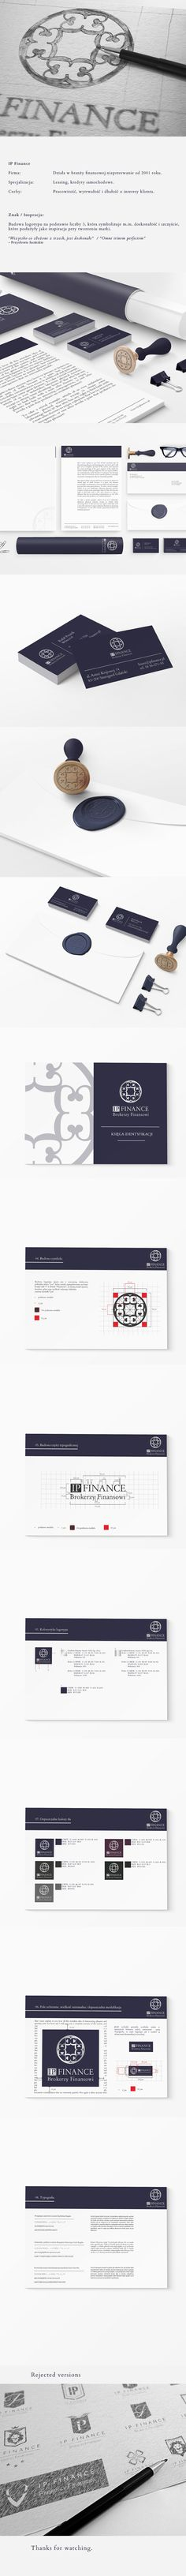 finance branding IP Finance Branding by Pawel Scharmach via Behance – Finance tips, saving money, budgeting planner Finance Quotes, Finance Logo, Finance Books, Finance Tips, Logo Branding, Brand Identity, Branding Design, Logo Design, Corporate Identity